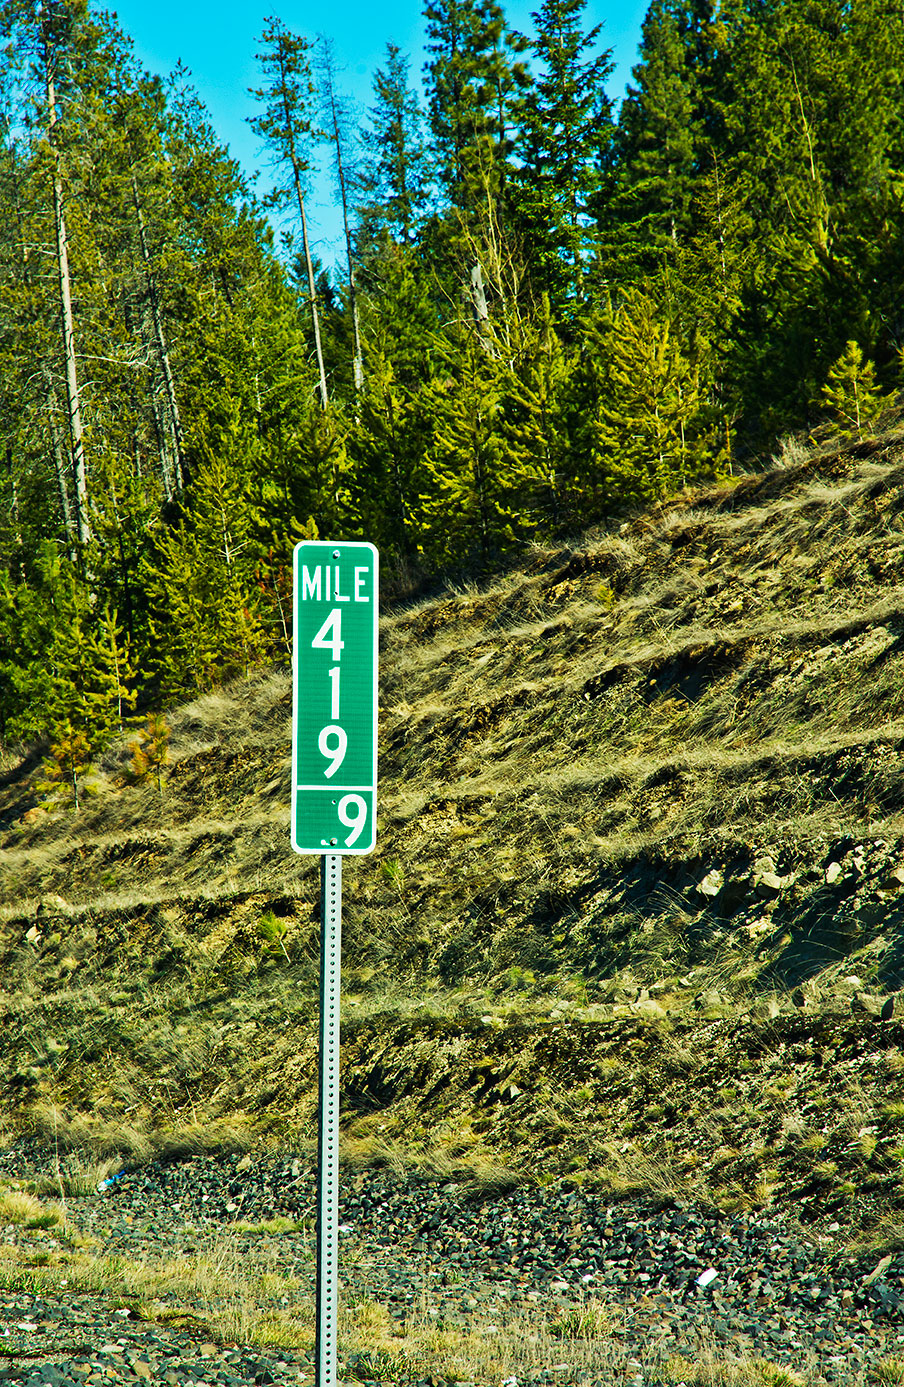 kootenai gay personals Personals community situated just southeast of beautiful bonners ferry & its numerous outdoor recreational sites such as the scenic kootenai river.